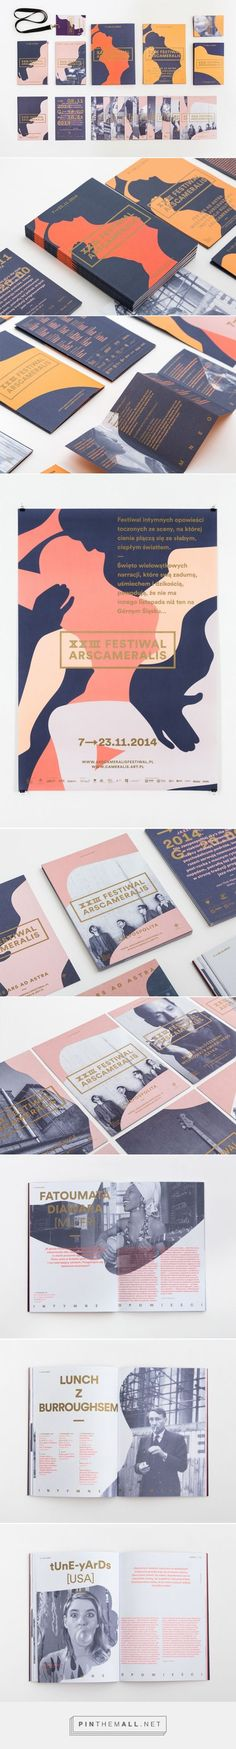 Ars Cameralis Festival Branding by Marta Gawin | Fivestar Branding – Design and Branding Agency & Inspiration Gallery